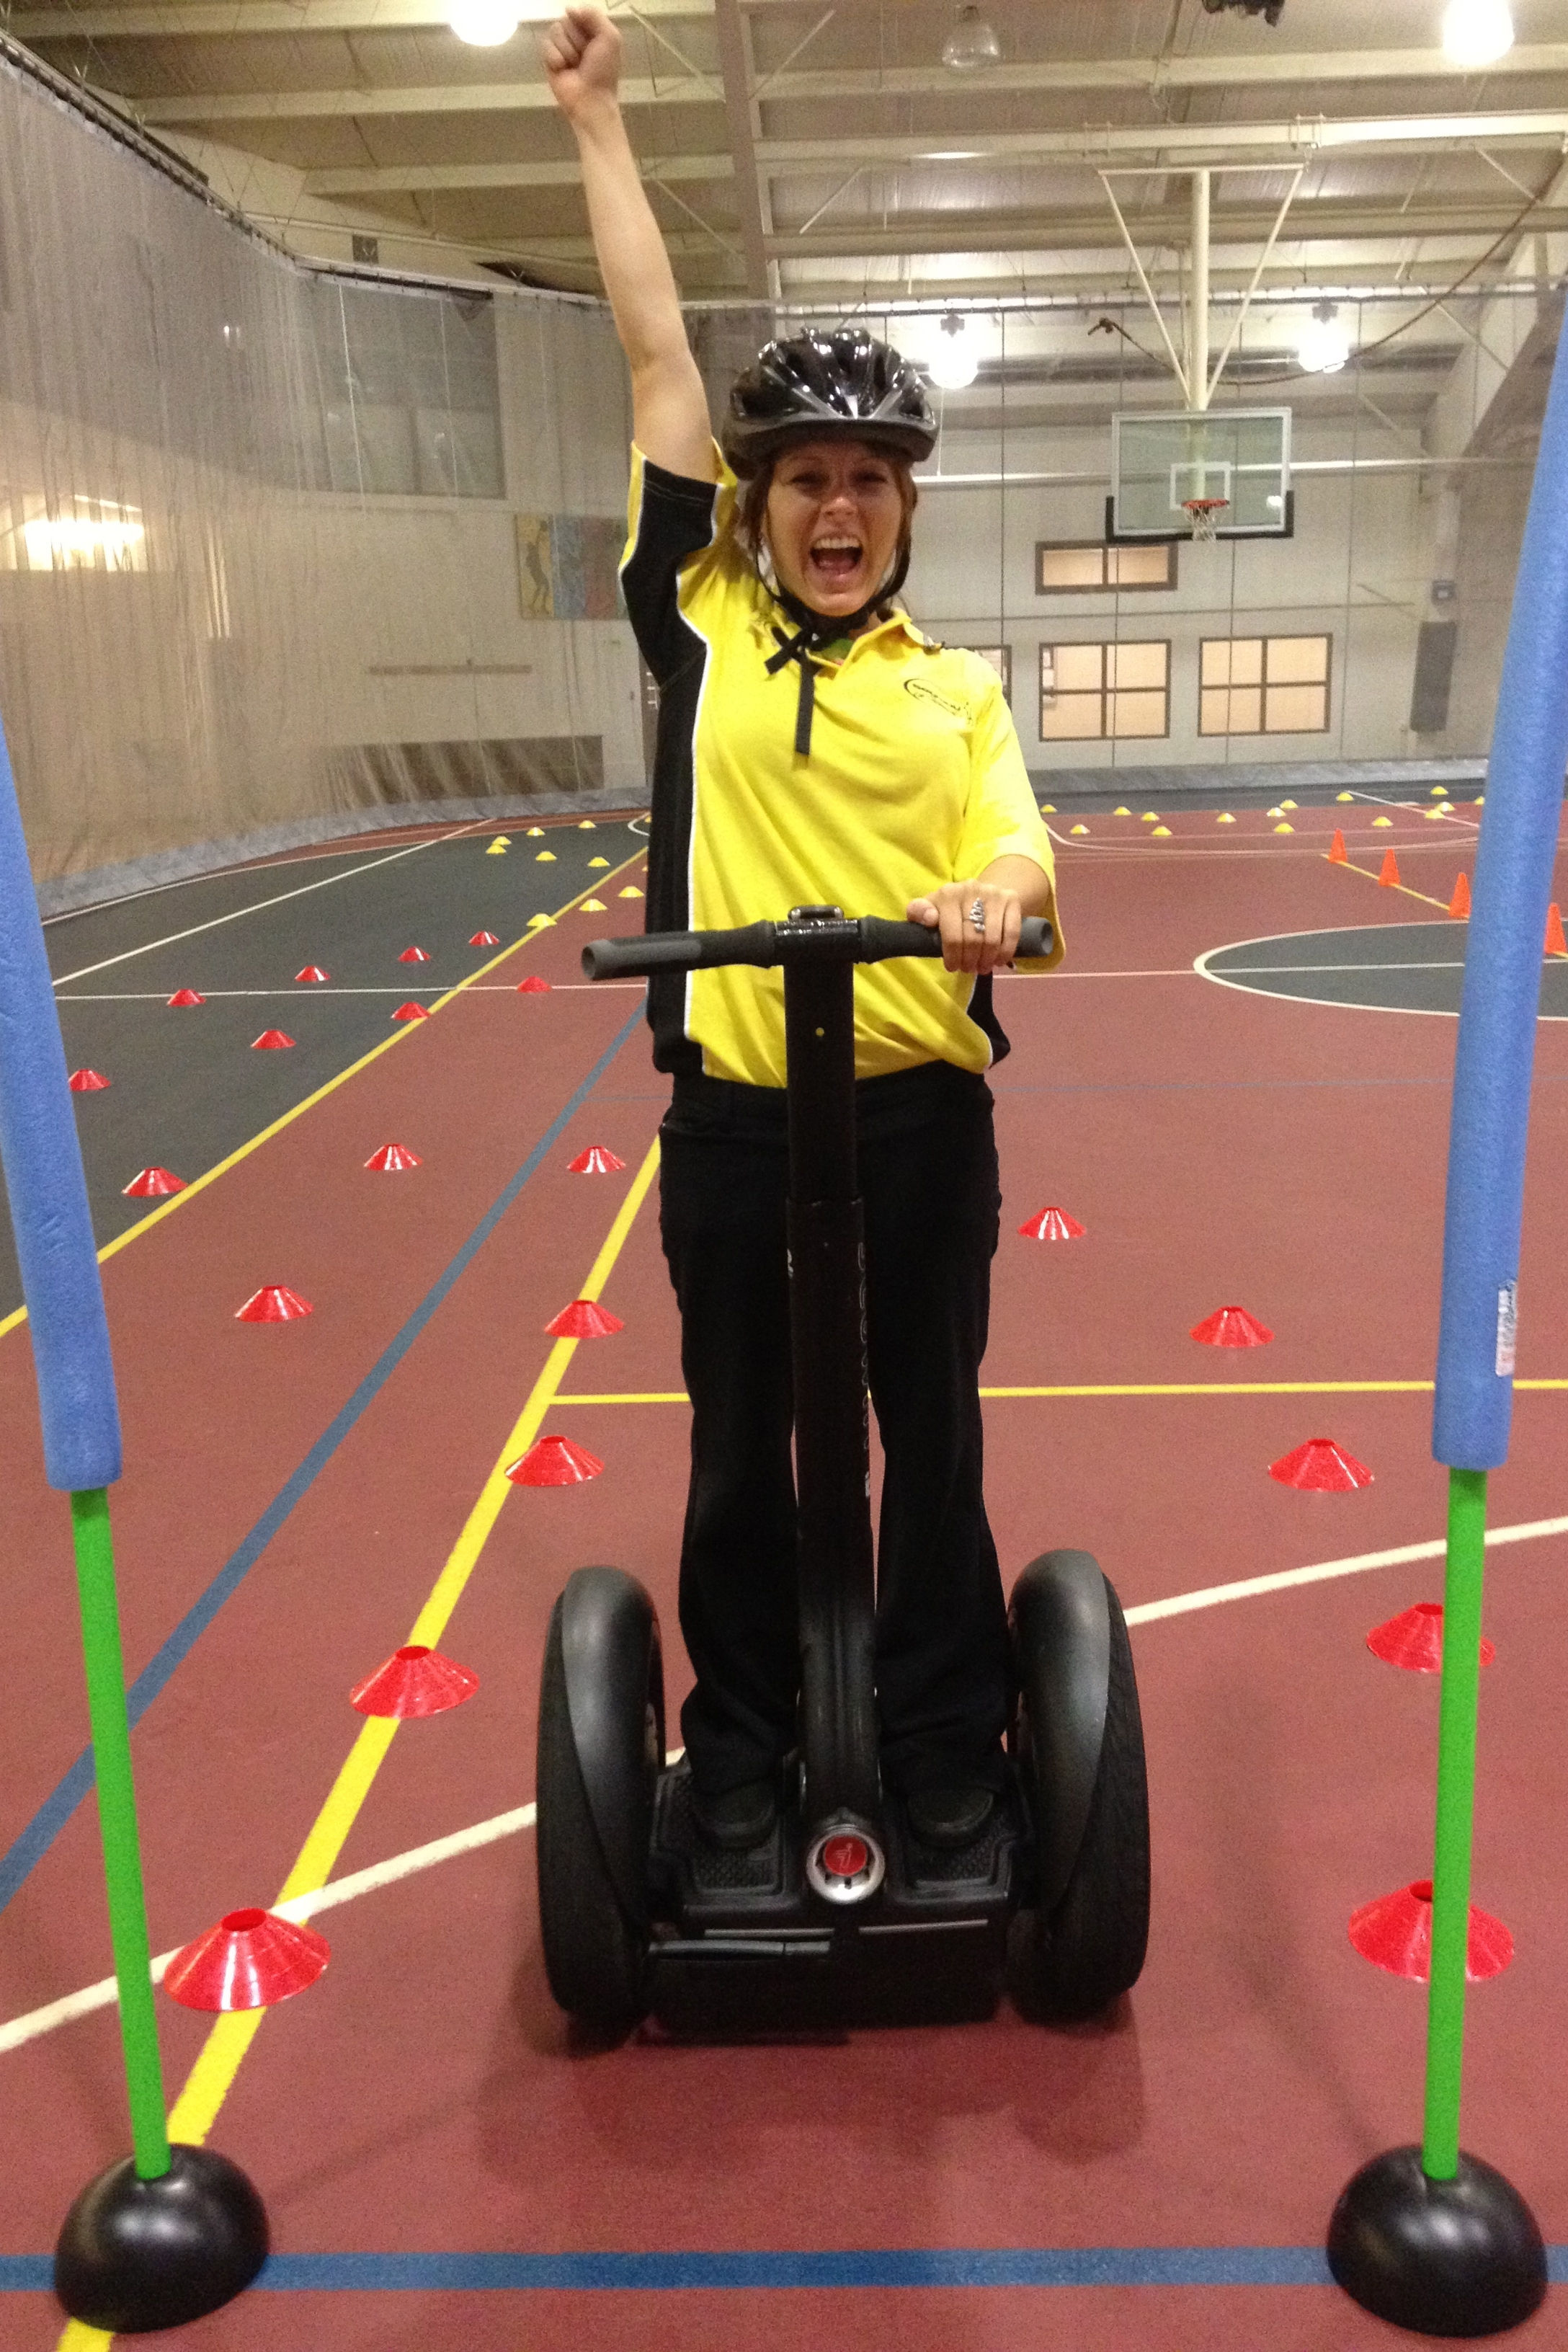 Segway Obstacle Course - Skill, balance, strategy and memory are all challenged simultaneously in this exciting quest. After a brief safety lesson on the Segway PT®, each participant will navigate through an obstacle course testing their skills. The course will focus more on agility and the ability to remember the correct path rather than speed. The event can be tailored to fit your specific needs and can be set up either indoors or outdoors.